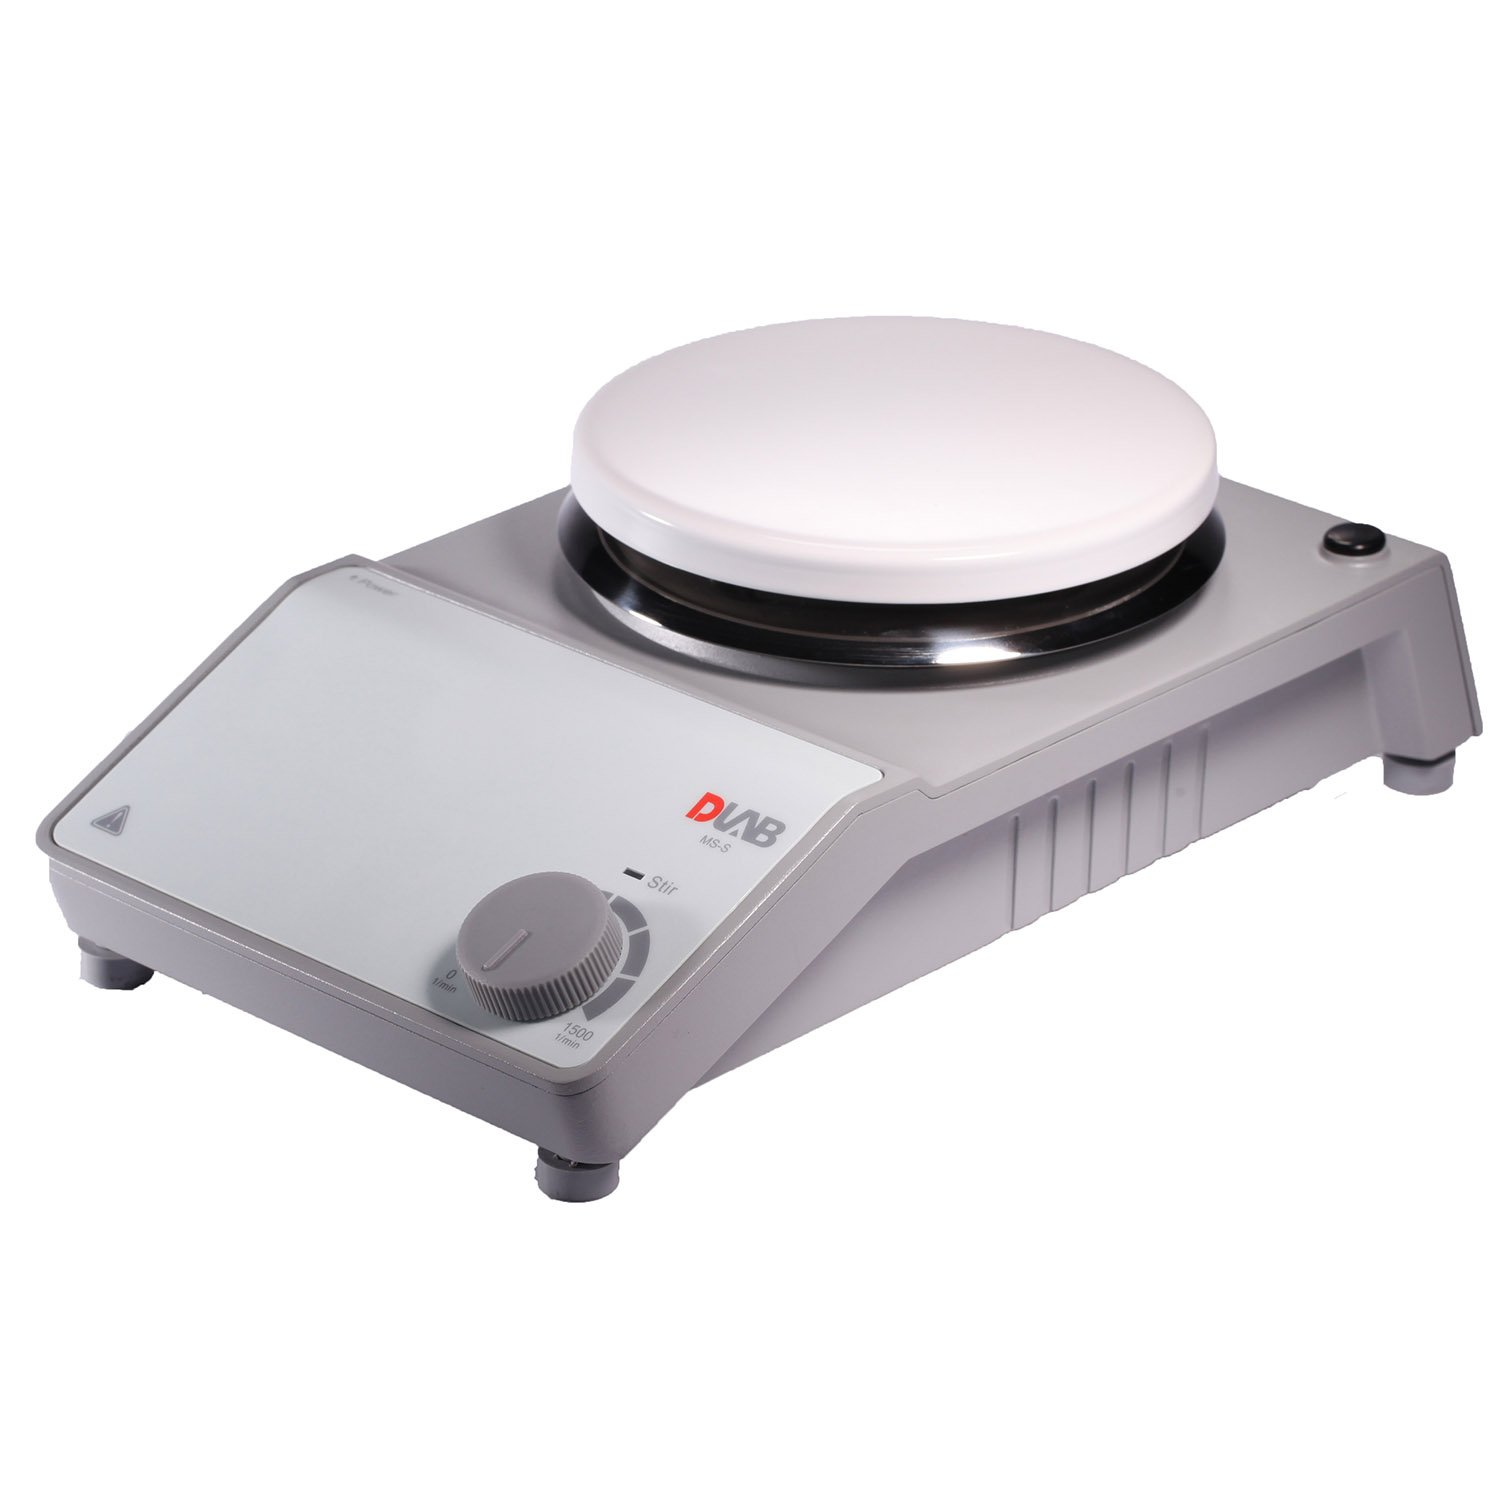 DLAB 8030211000 Ms-S Analog Magnetic Stirrer: Amazon.com ...